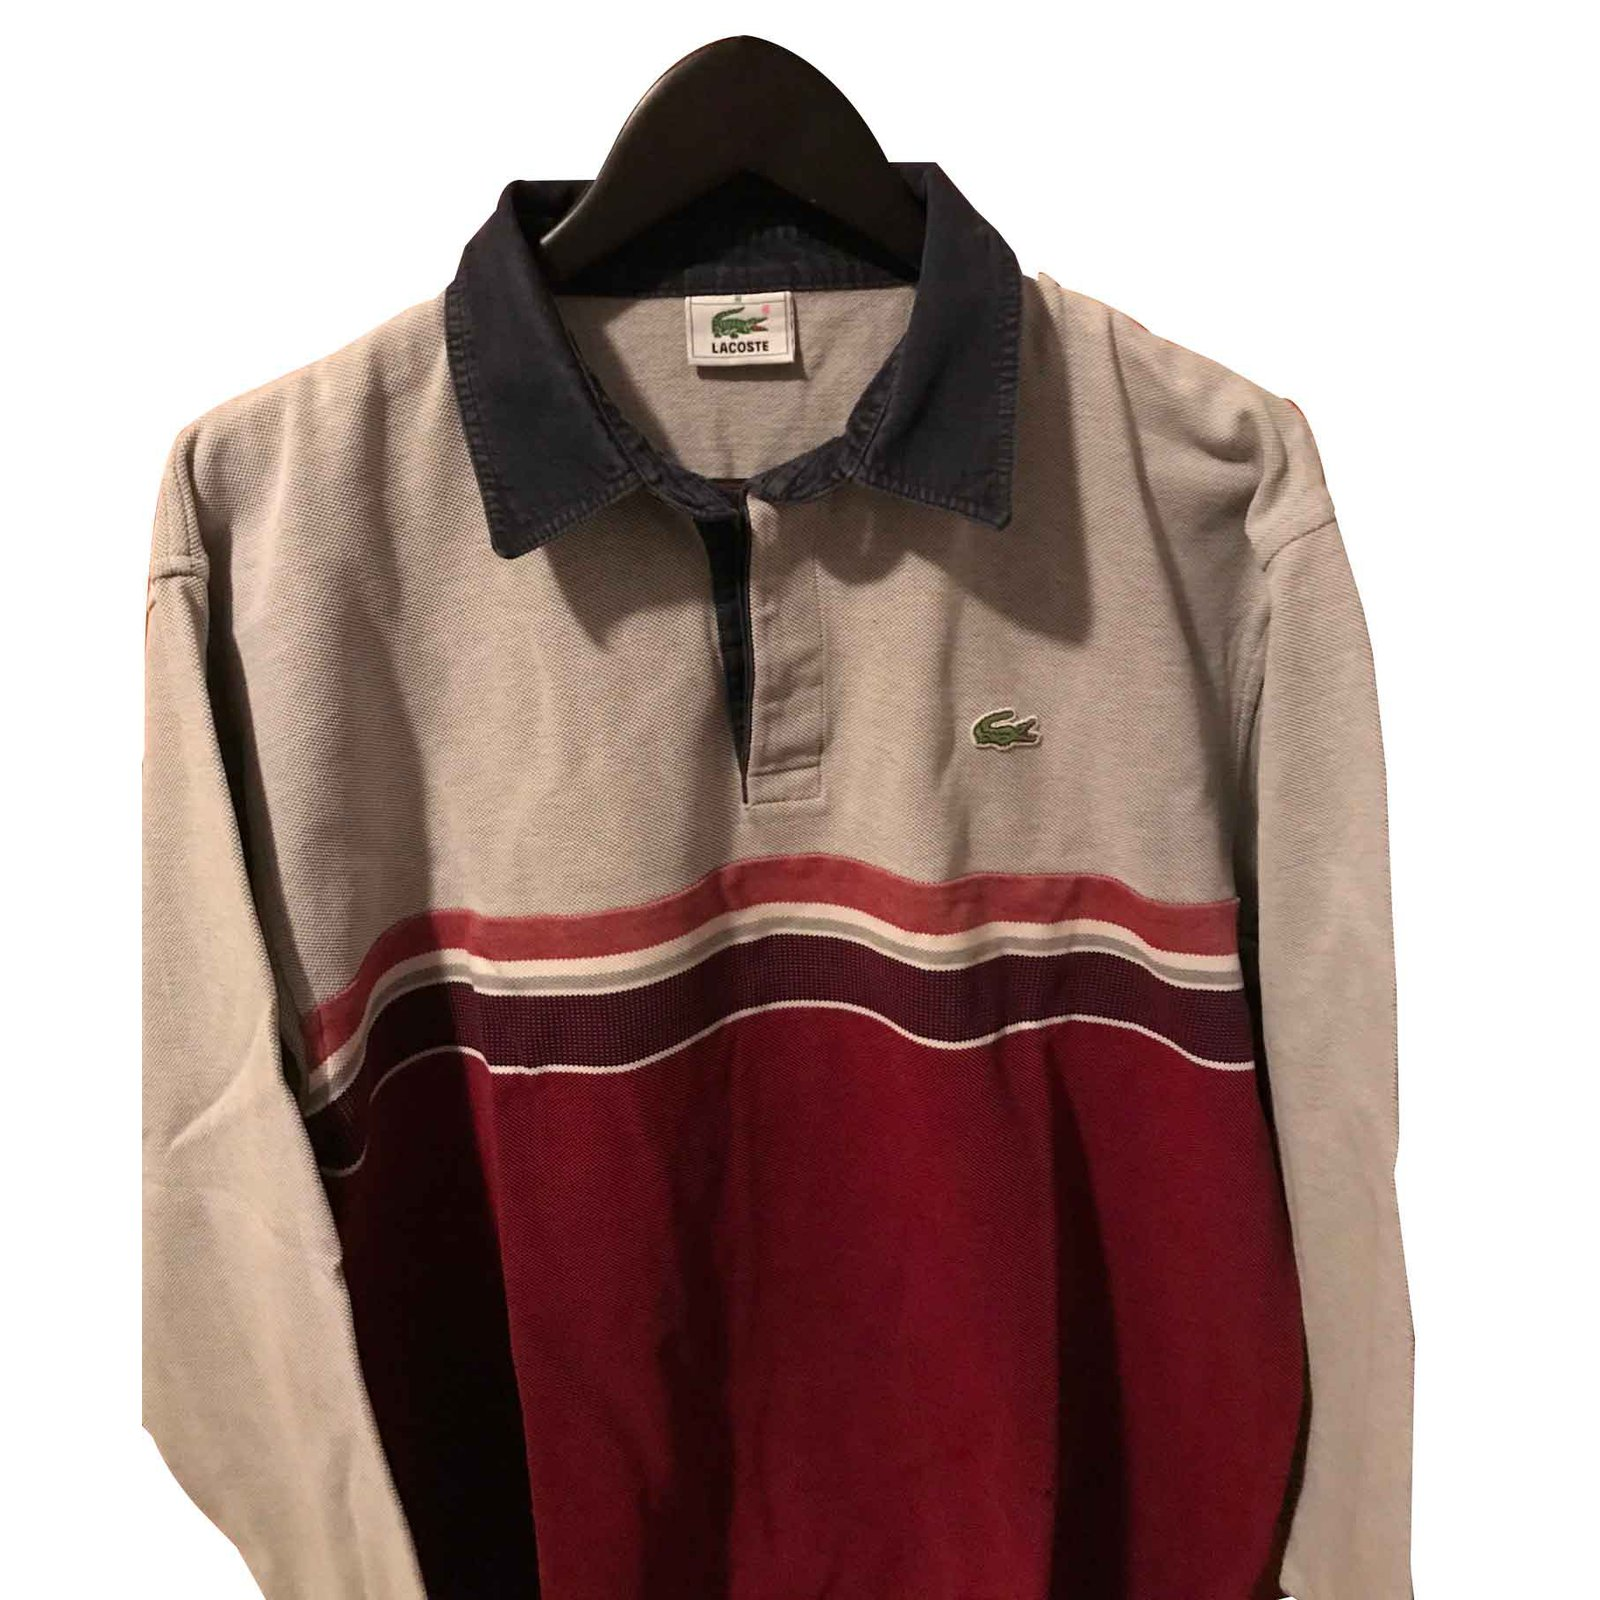 a5dad585 Lacoste men's long sleeve polo shirt 5XXL